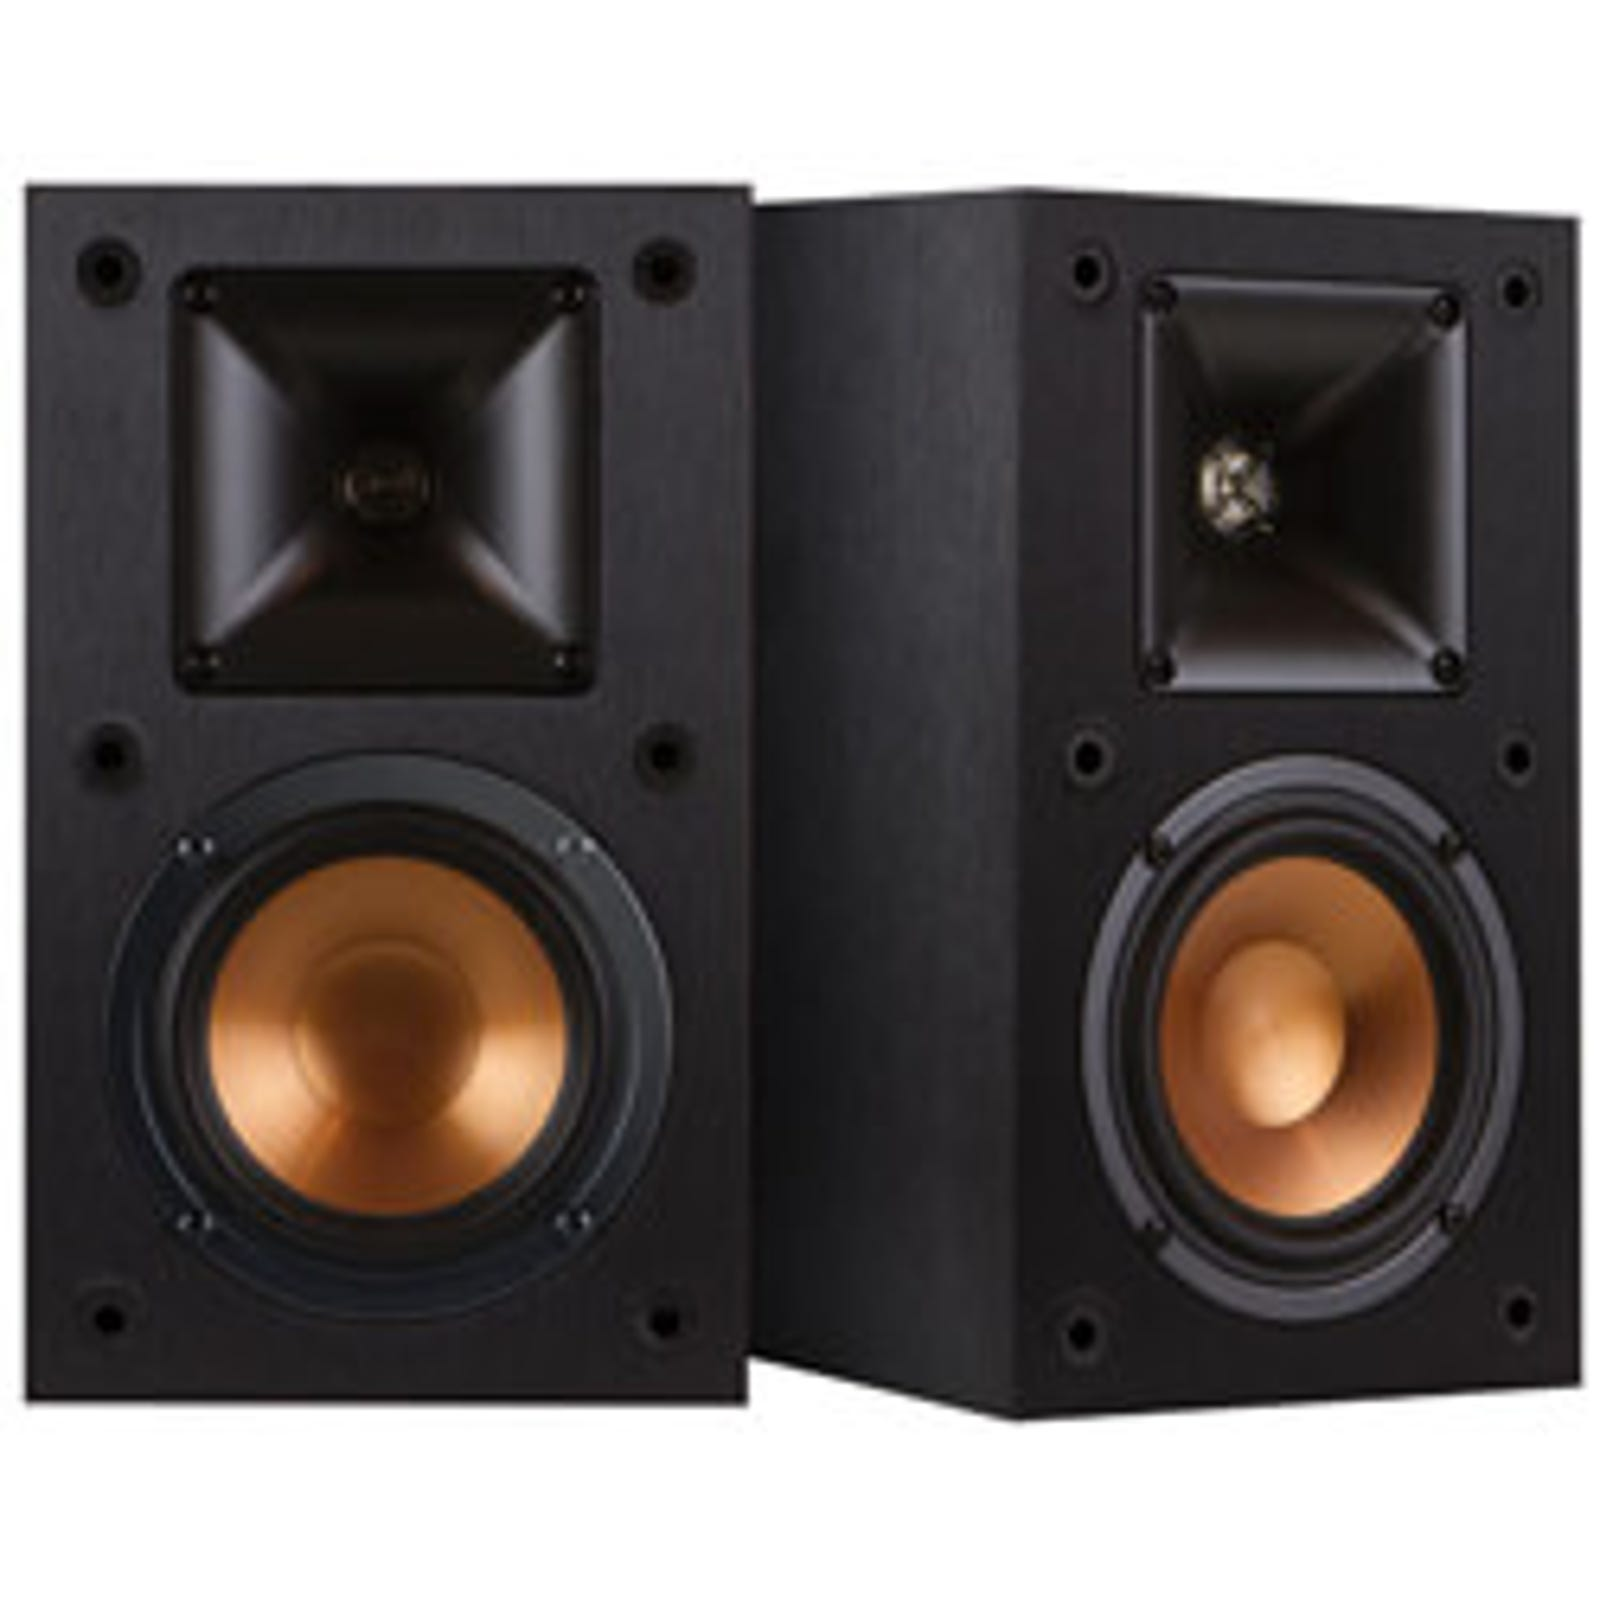 530a5ab4b7f Home Audio & Speakers | Best Buy Canada